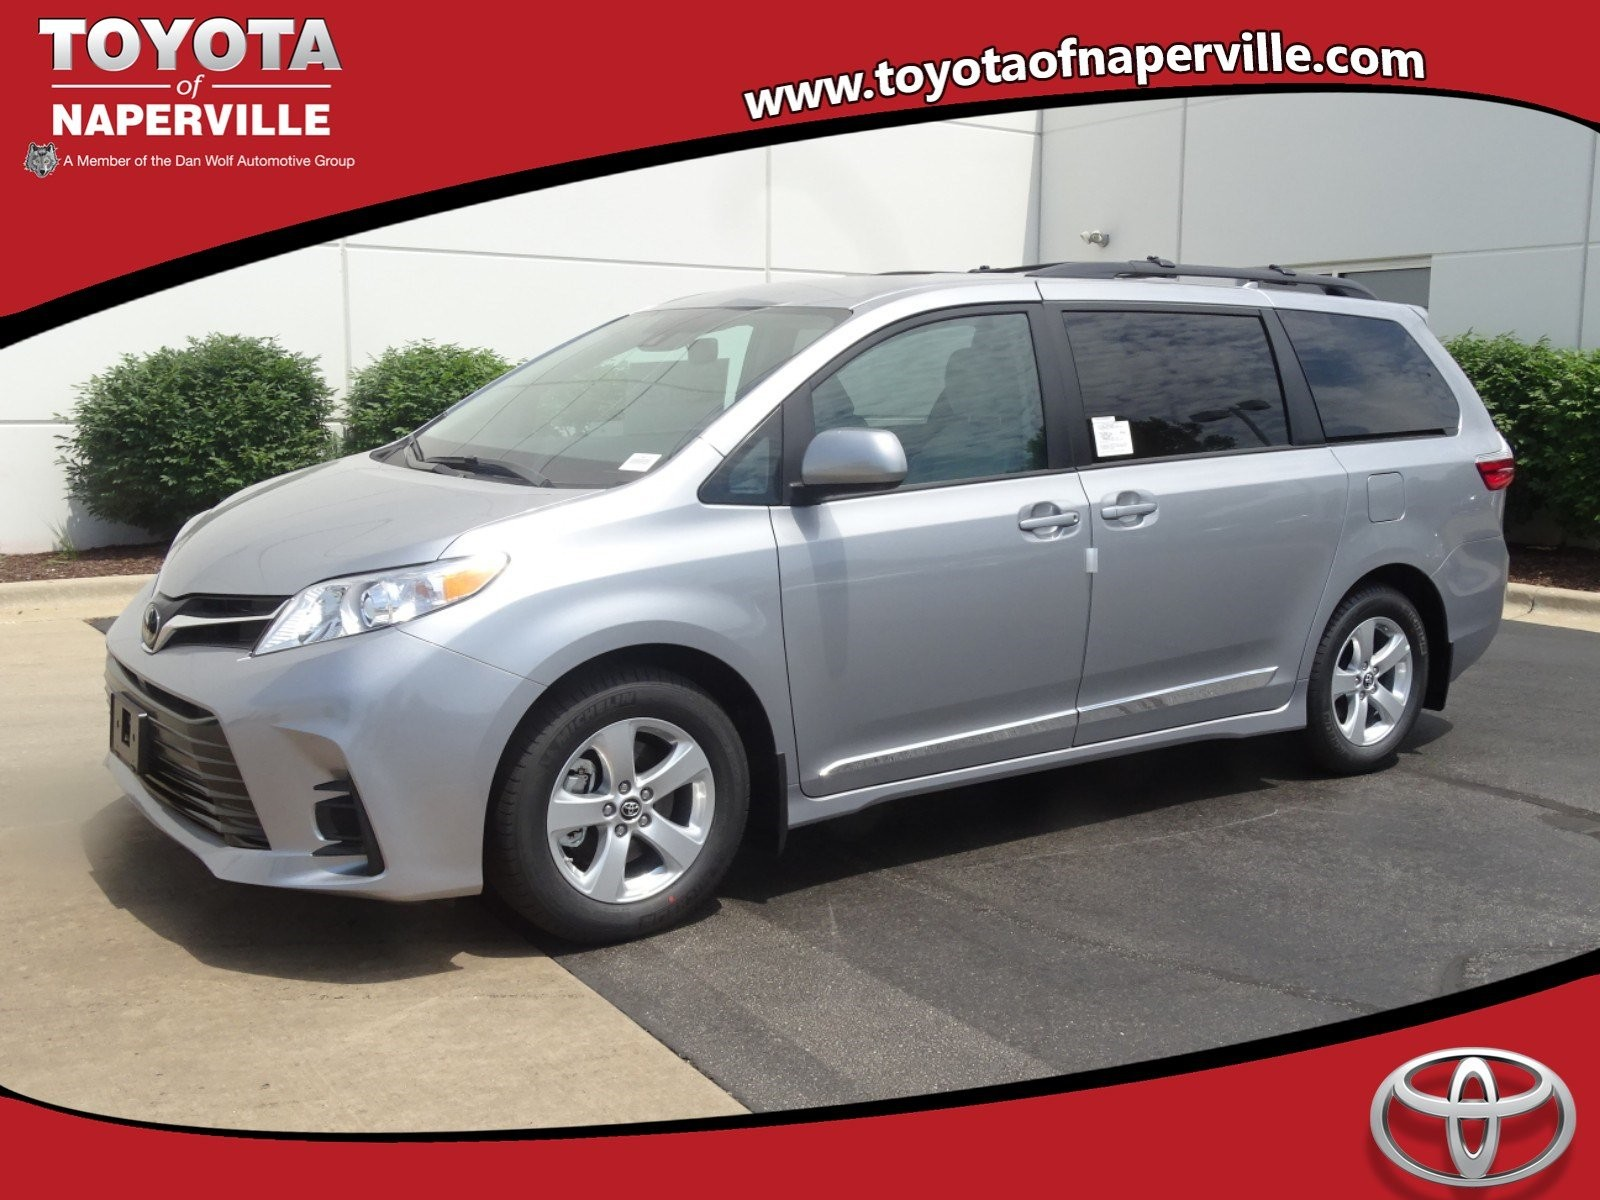 hight resolution of 2004 toyota sienna parts diagram new 2018 toyota sienna le 4d passenger van in naperville t